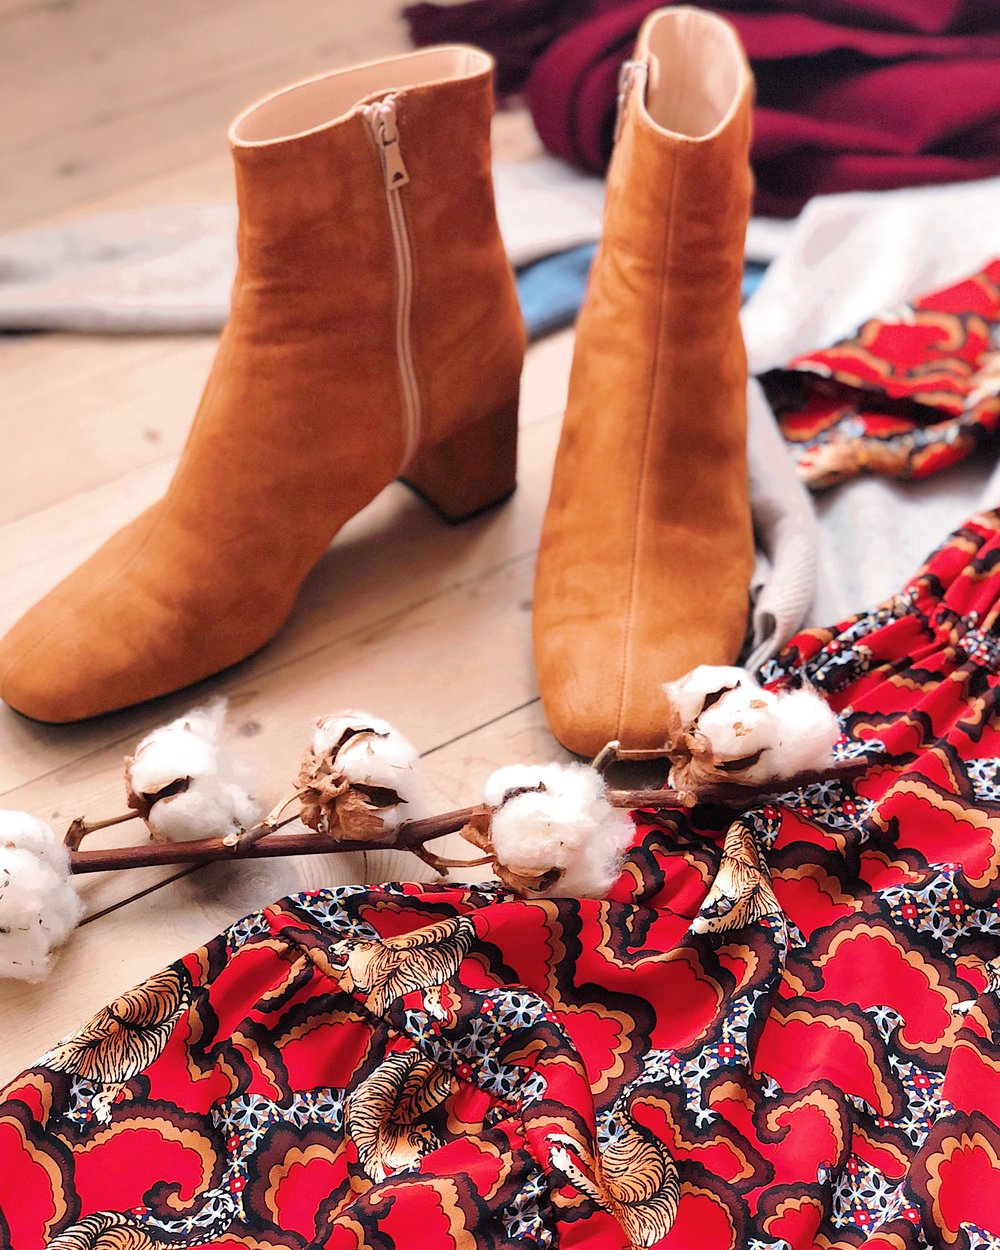 The printed, red dress from Sandro Paris was found via Vestiaire Collective, while the boots from Notabene were purchased via Tradono. Cashmere knits and scarf (in the background) are flea market finds.